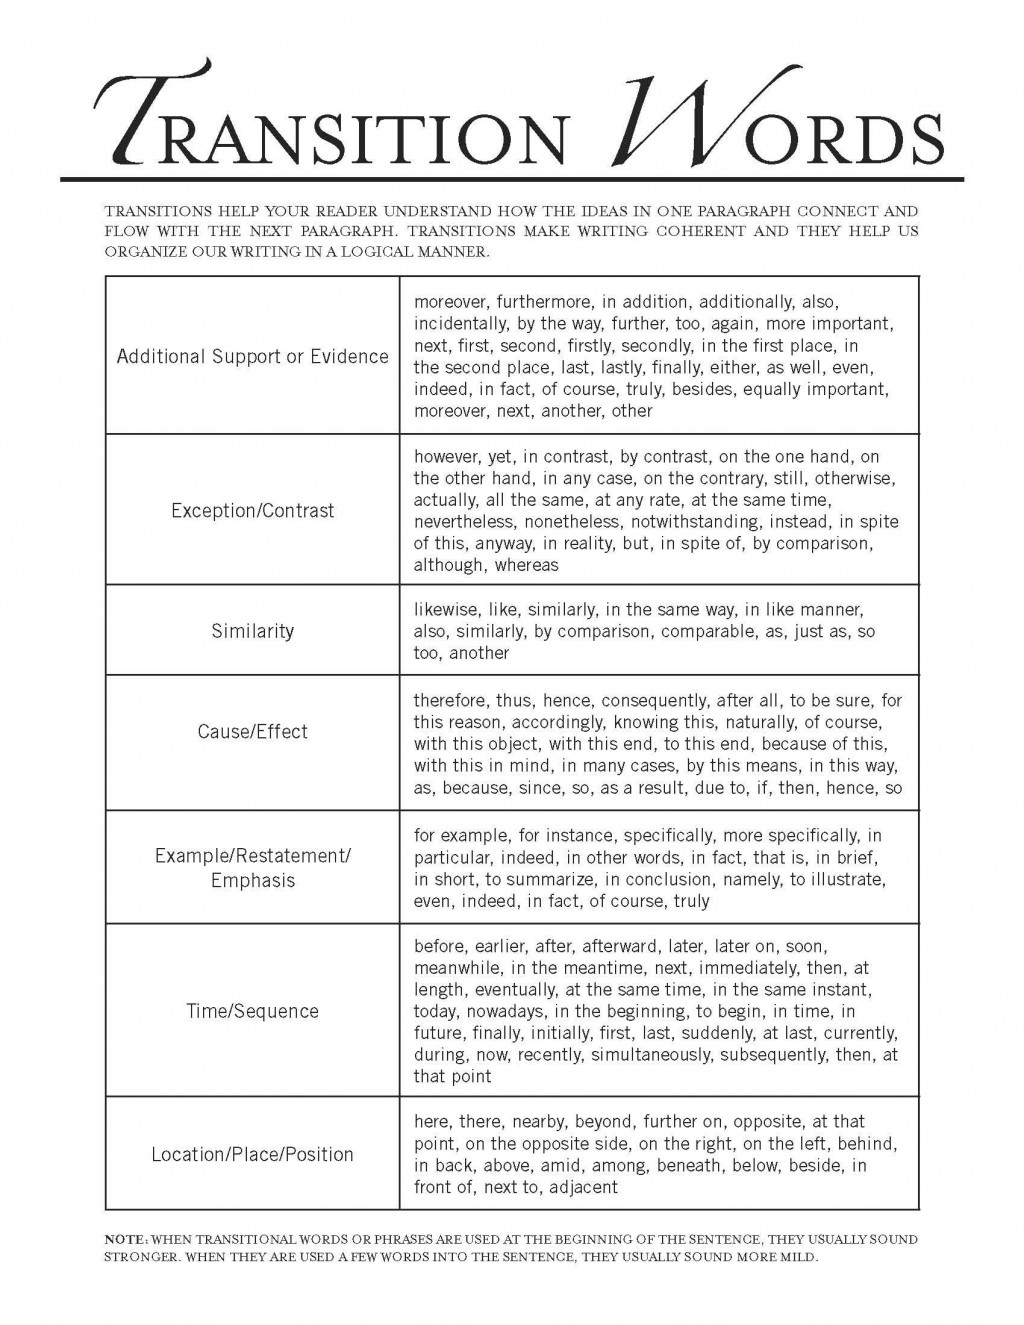 003 Essay Transitions Archaicawful Transition Words List For Contrast Sentence Examples Conclusion In Spanish Large